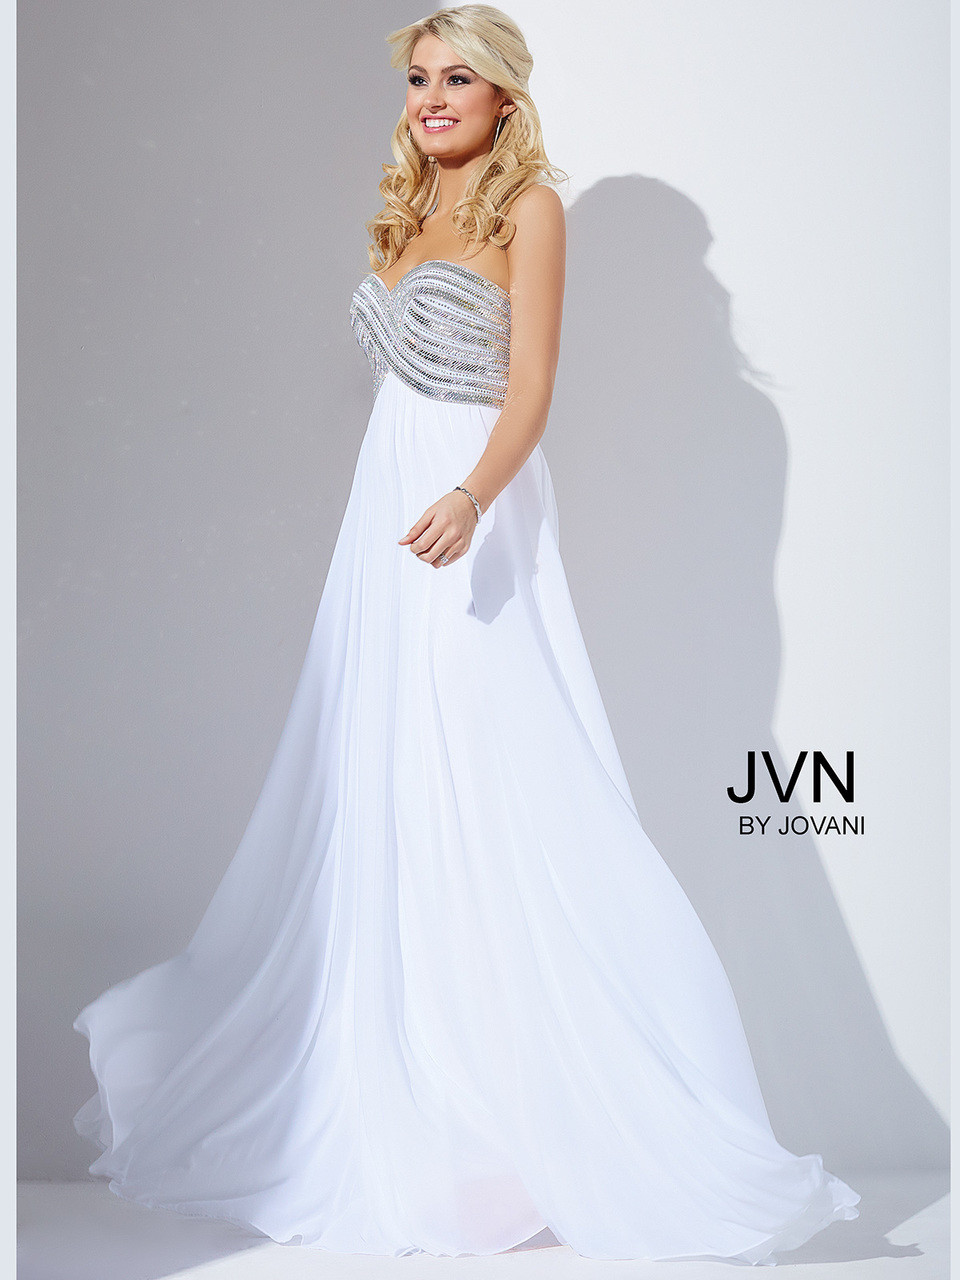 04feb49352 Strapless Chiffon Prom Gown by Jovani JVN30012